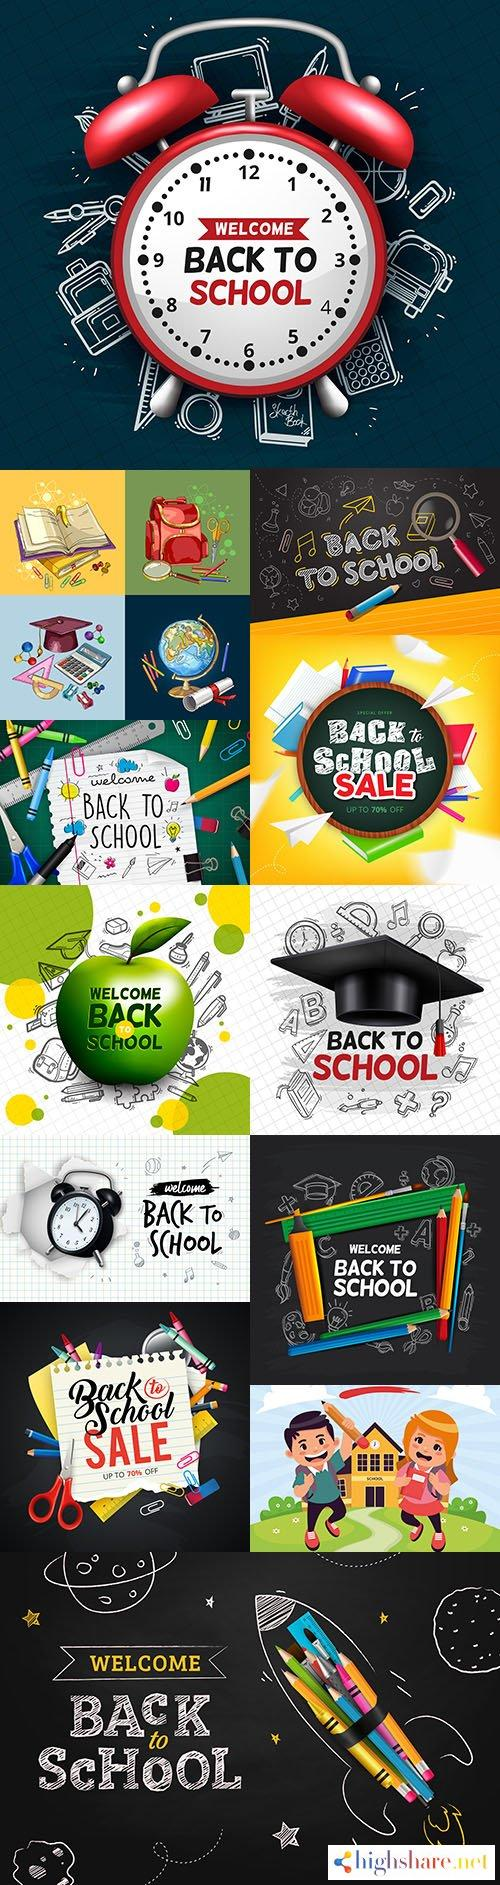 back to school and accessories collection illustration 40 5f3fffb3cd441 - Back to school and accessories collection illustration 40